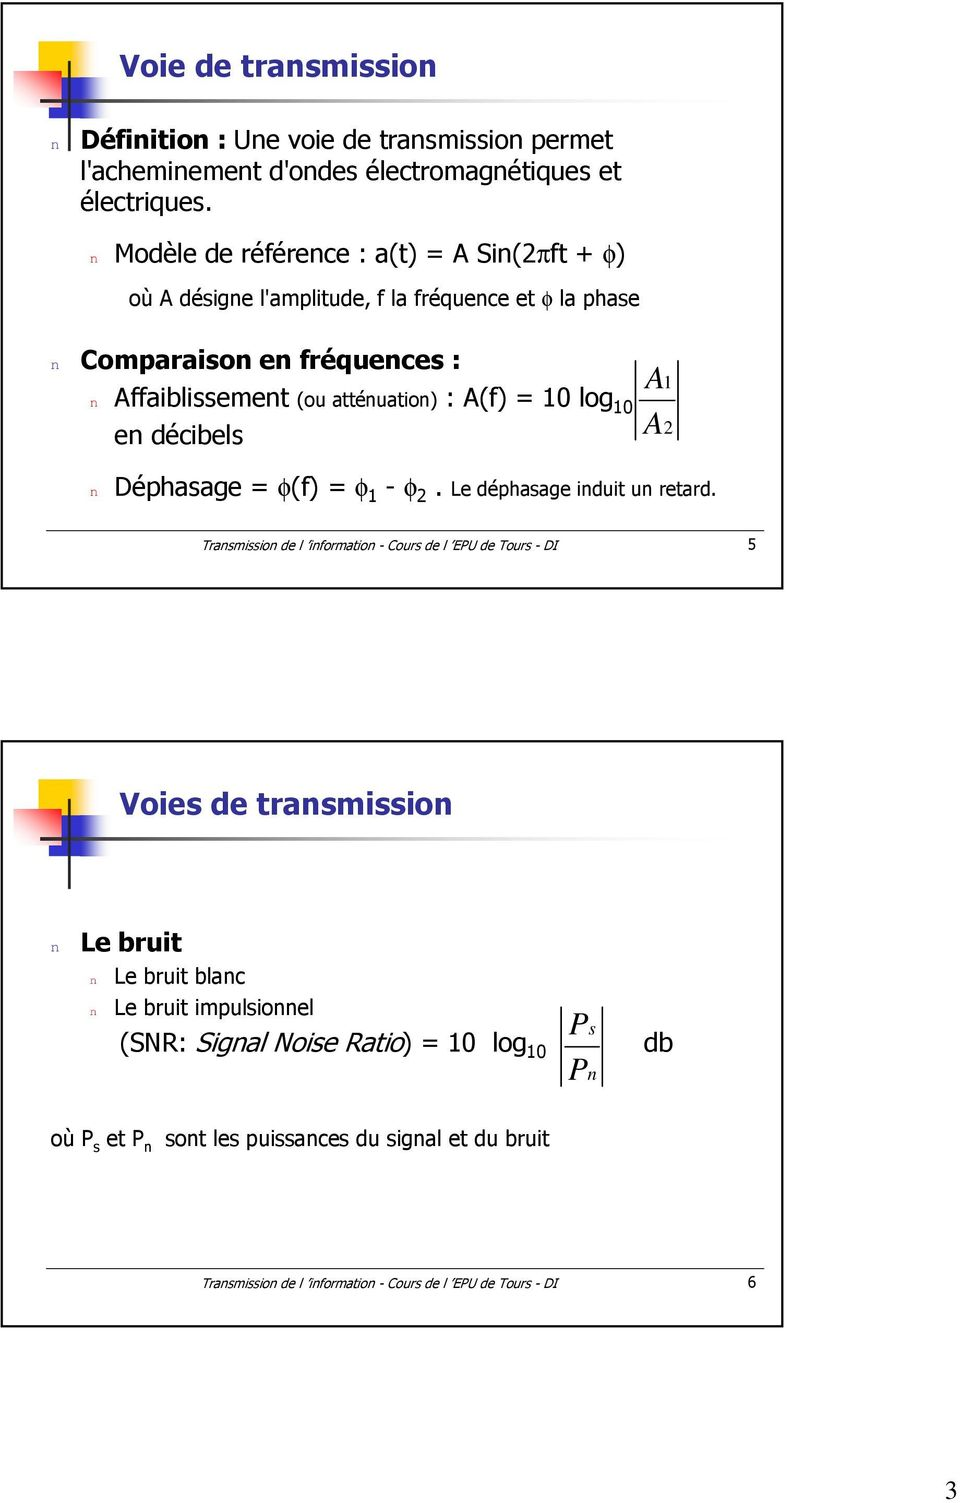 10 log 10 e décibels A A 1 2 Déphasage = φ(f) = φ 1 - φ 2. Le déphasage iduit u retard.